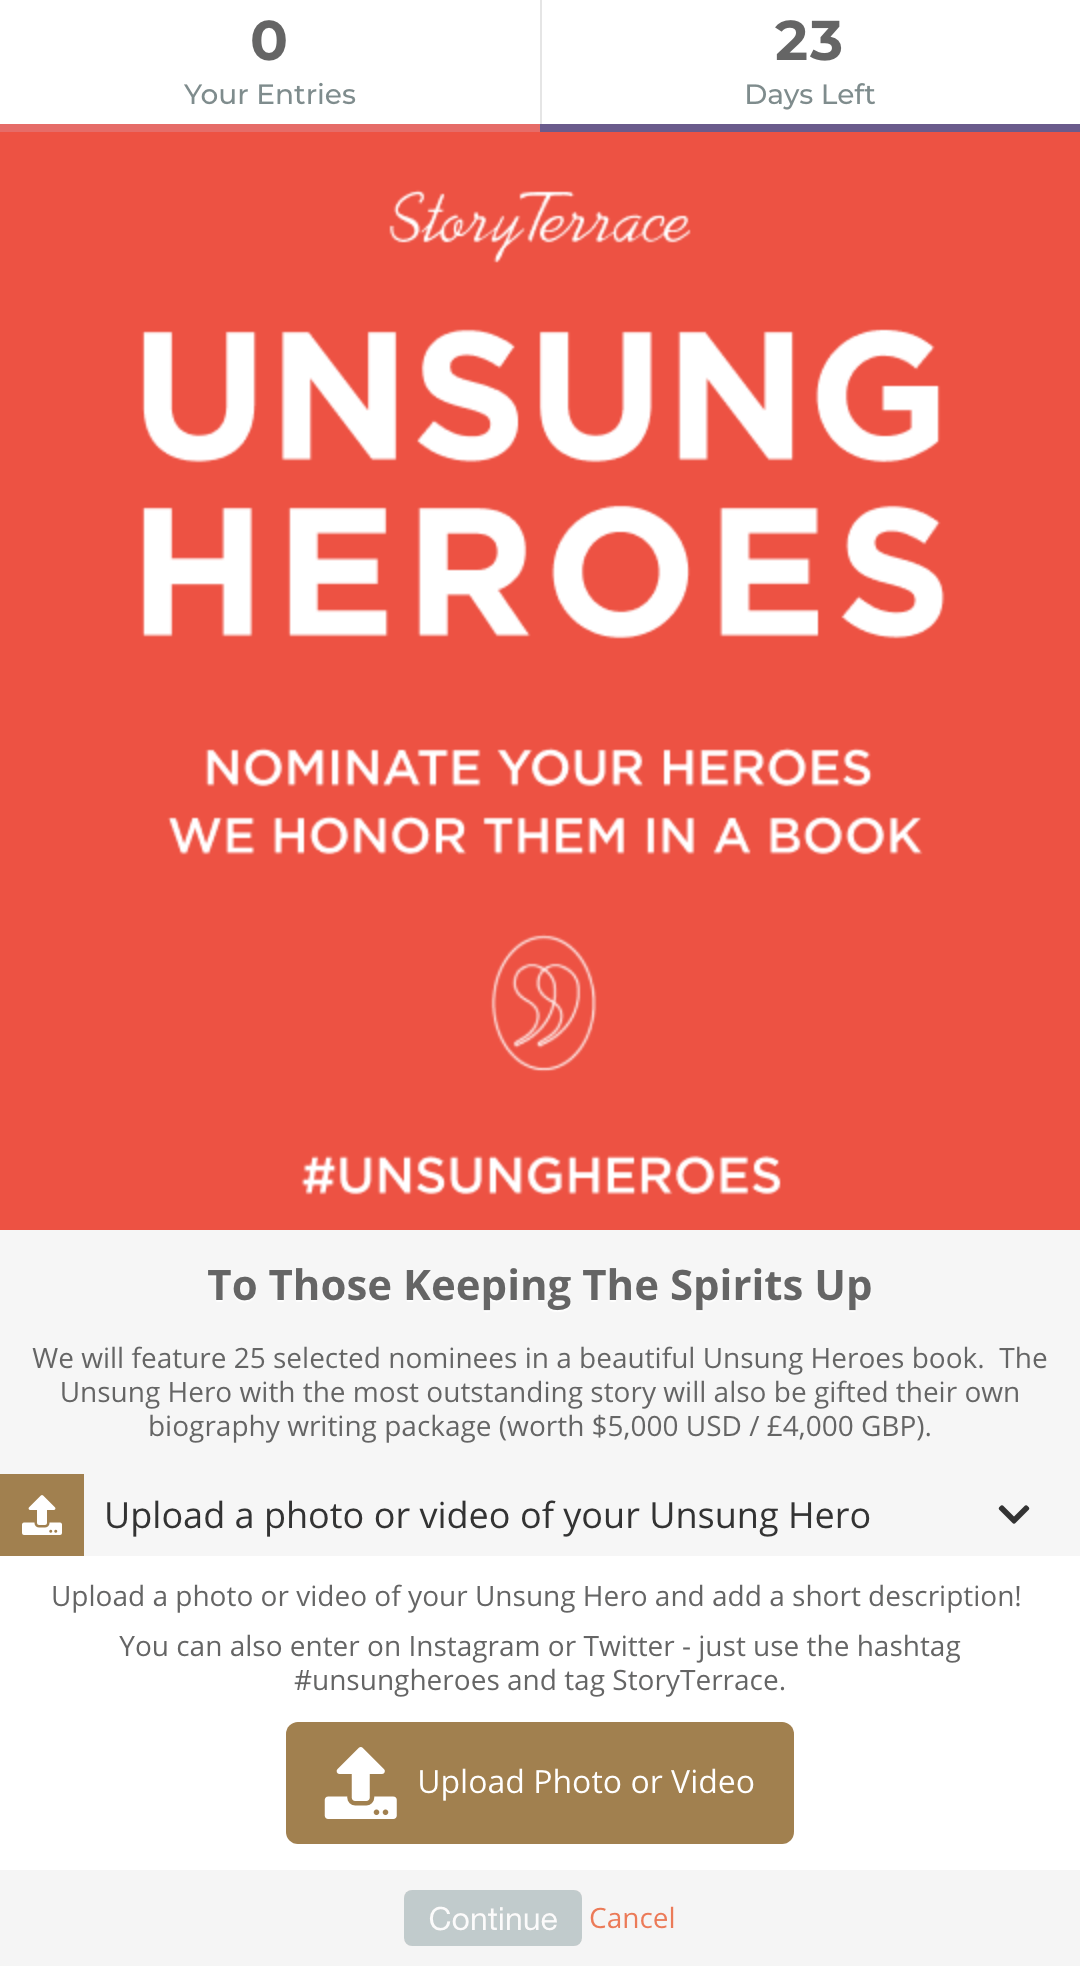 StoryTerrace's Unsung Heroes campaign